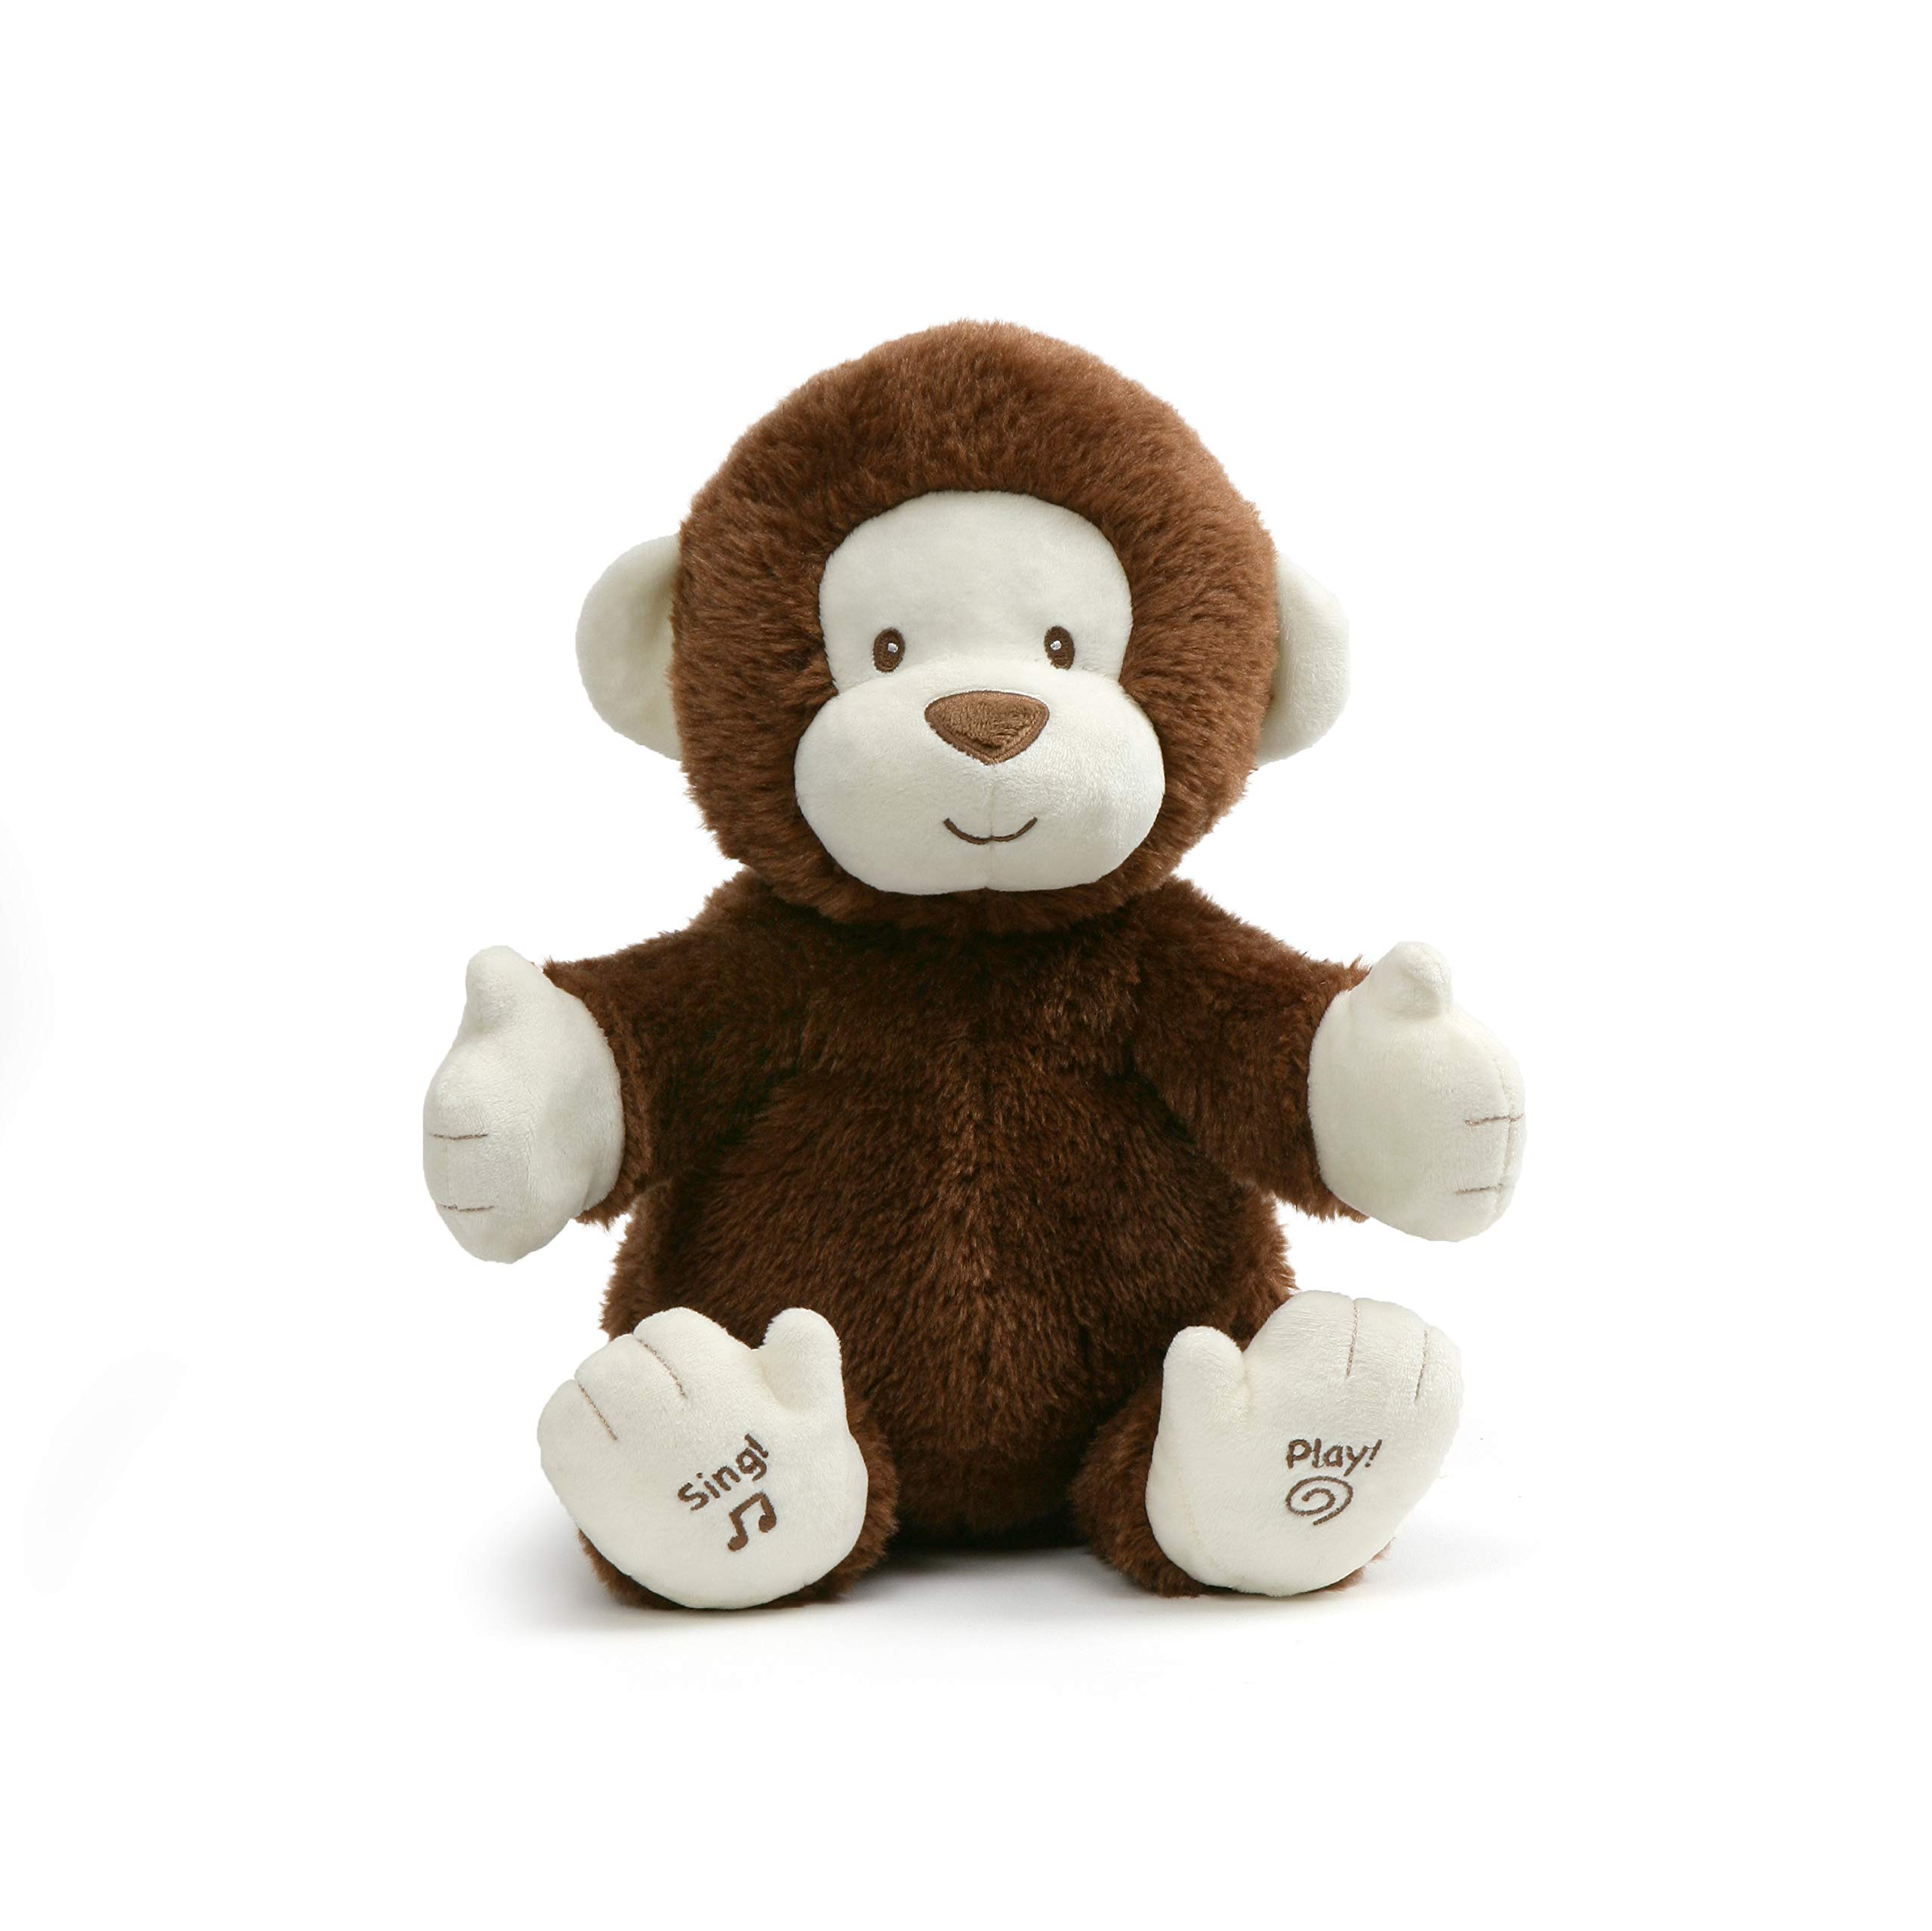 GUND Animated Clappy Monkey Singing and Clapping Plush Stuffed Animal, Brown, 12'', Multicolor by GUND